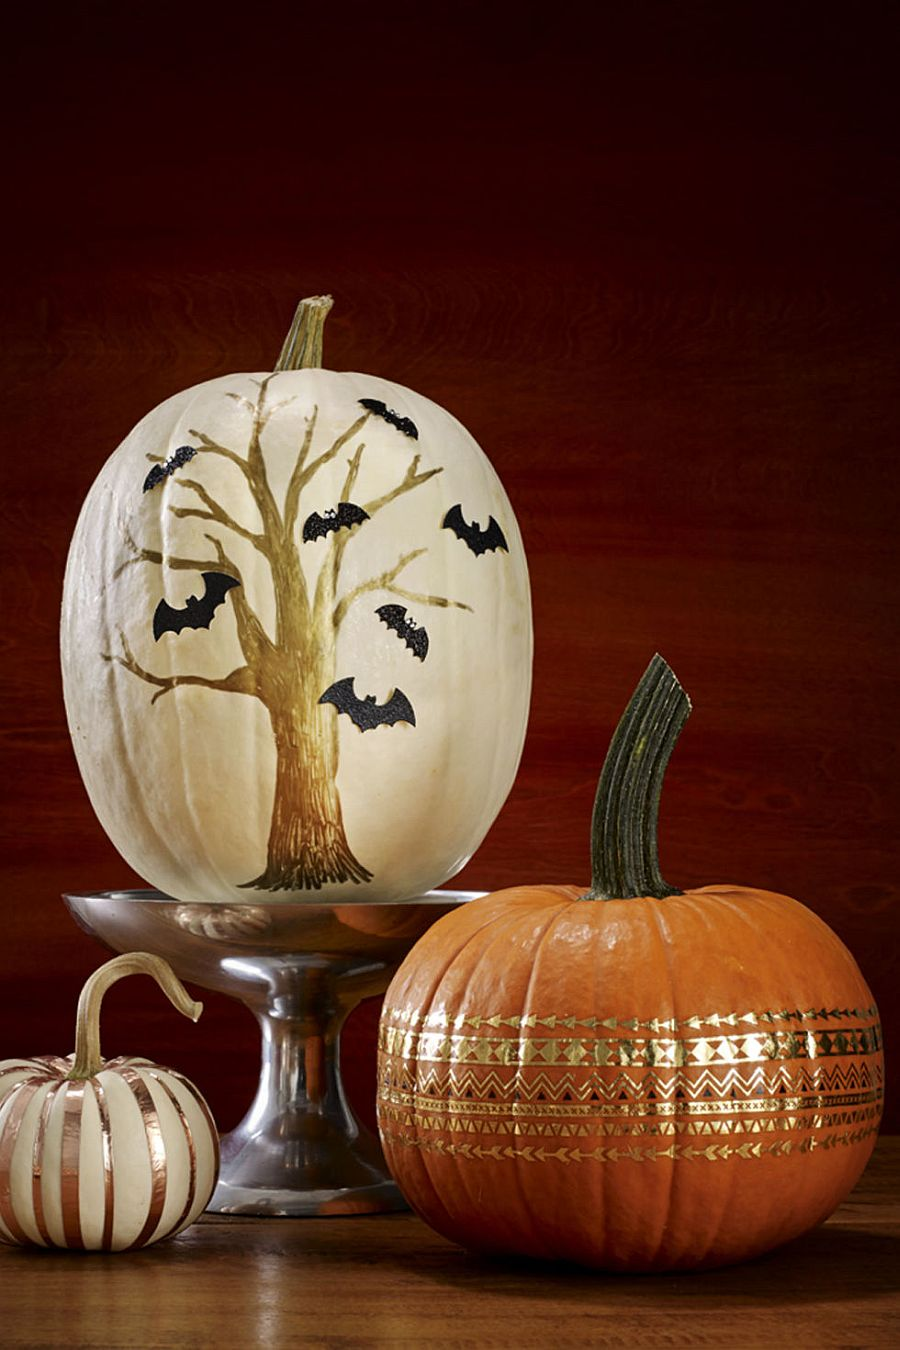 25 awesome painted pumpkin ideas for halloween and beyond. Black Bedroom Furniture Sets. Home Design Ideas